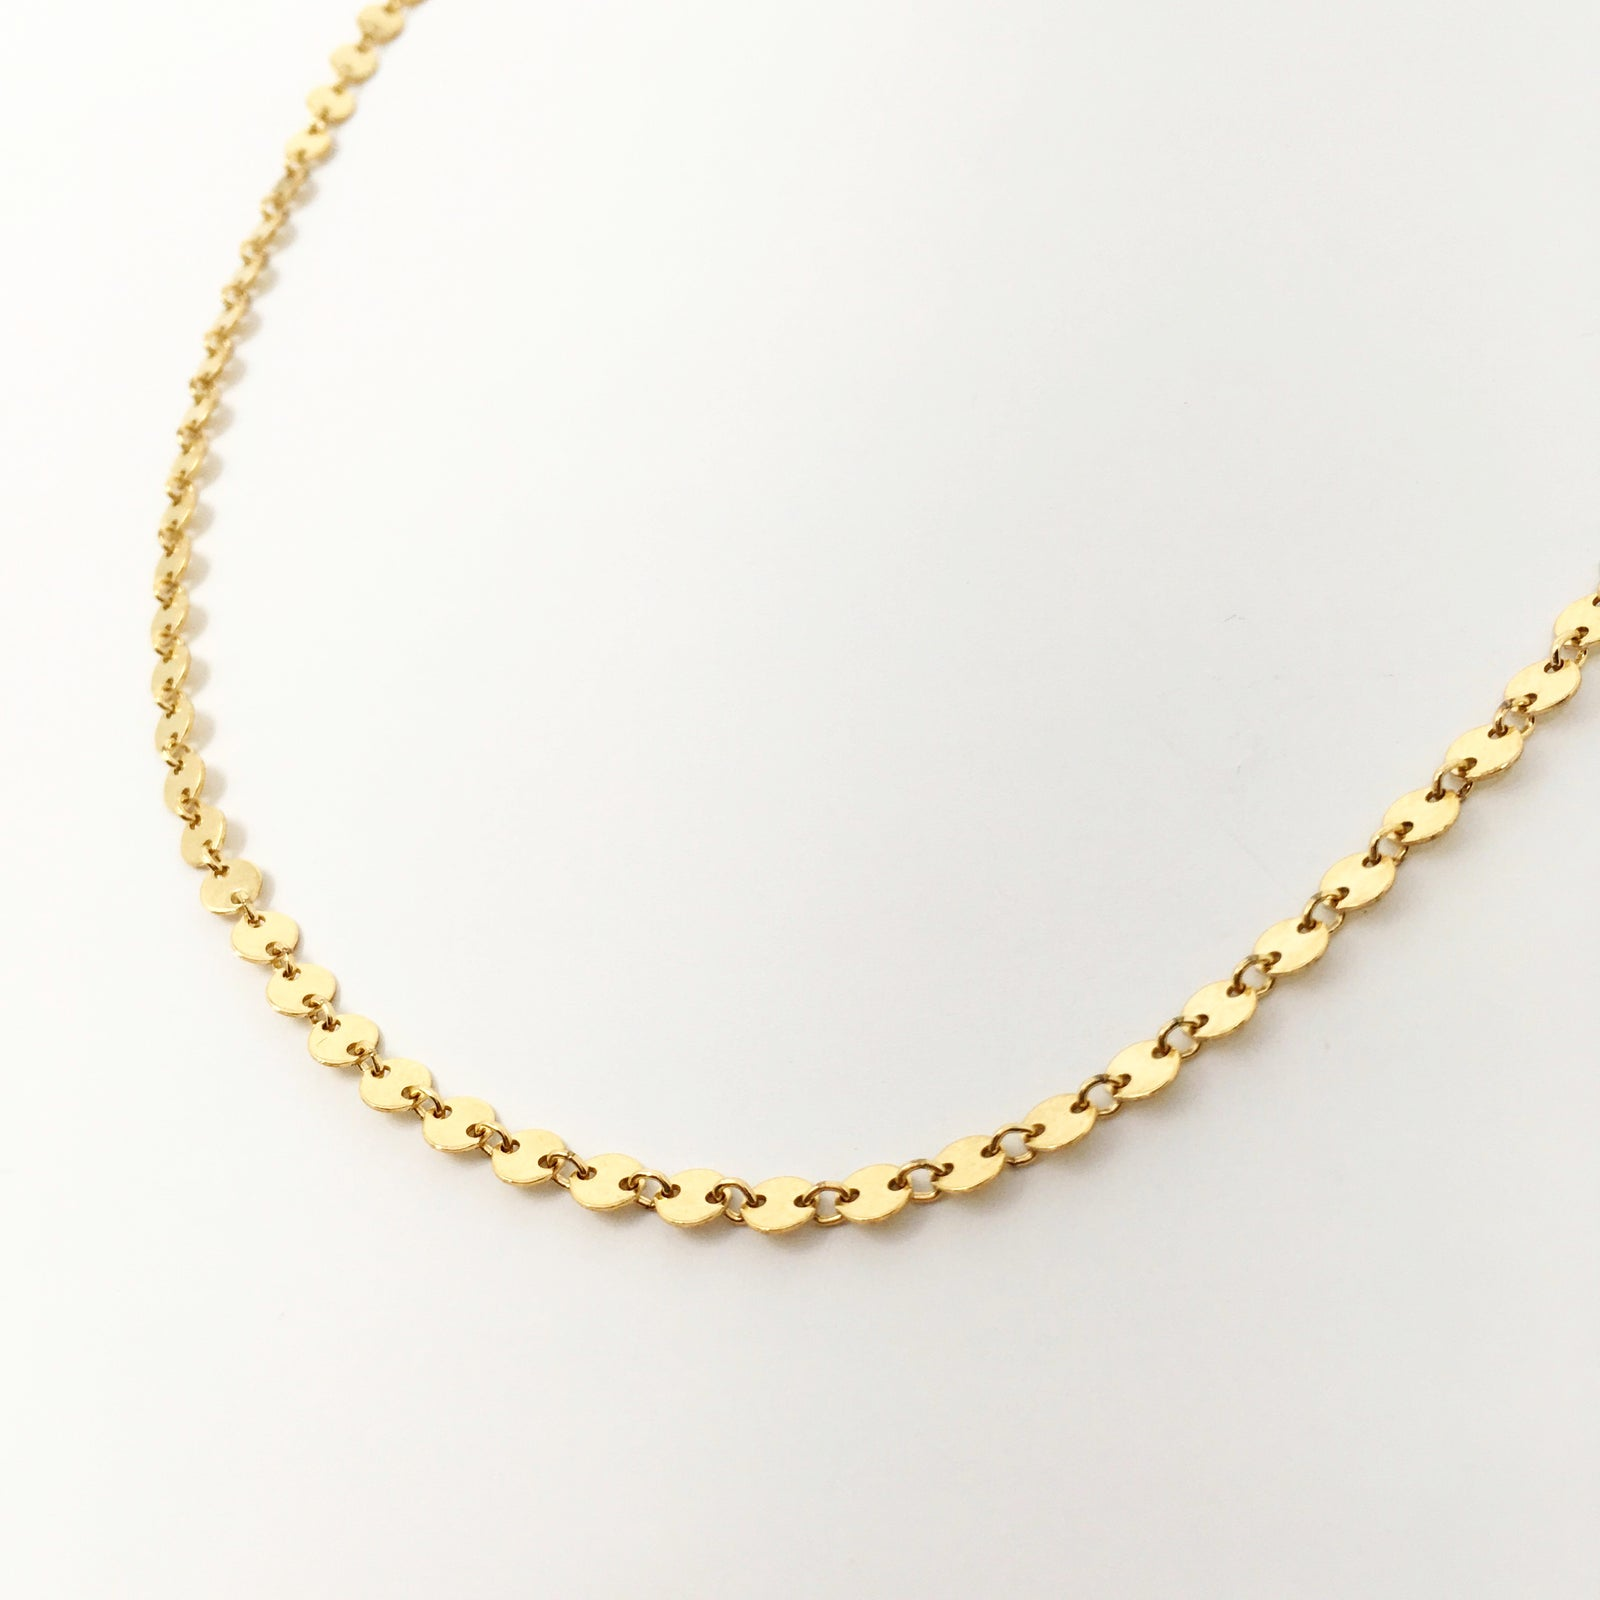 14K GOLD DISK CHAIN NECKLACE